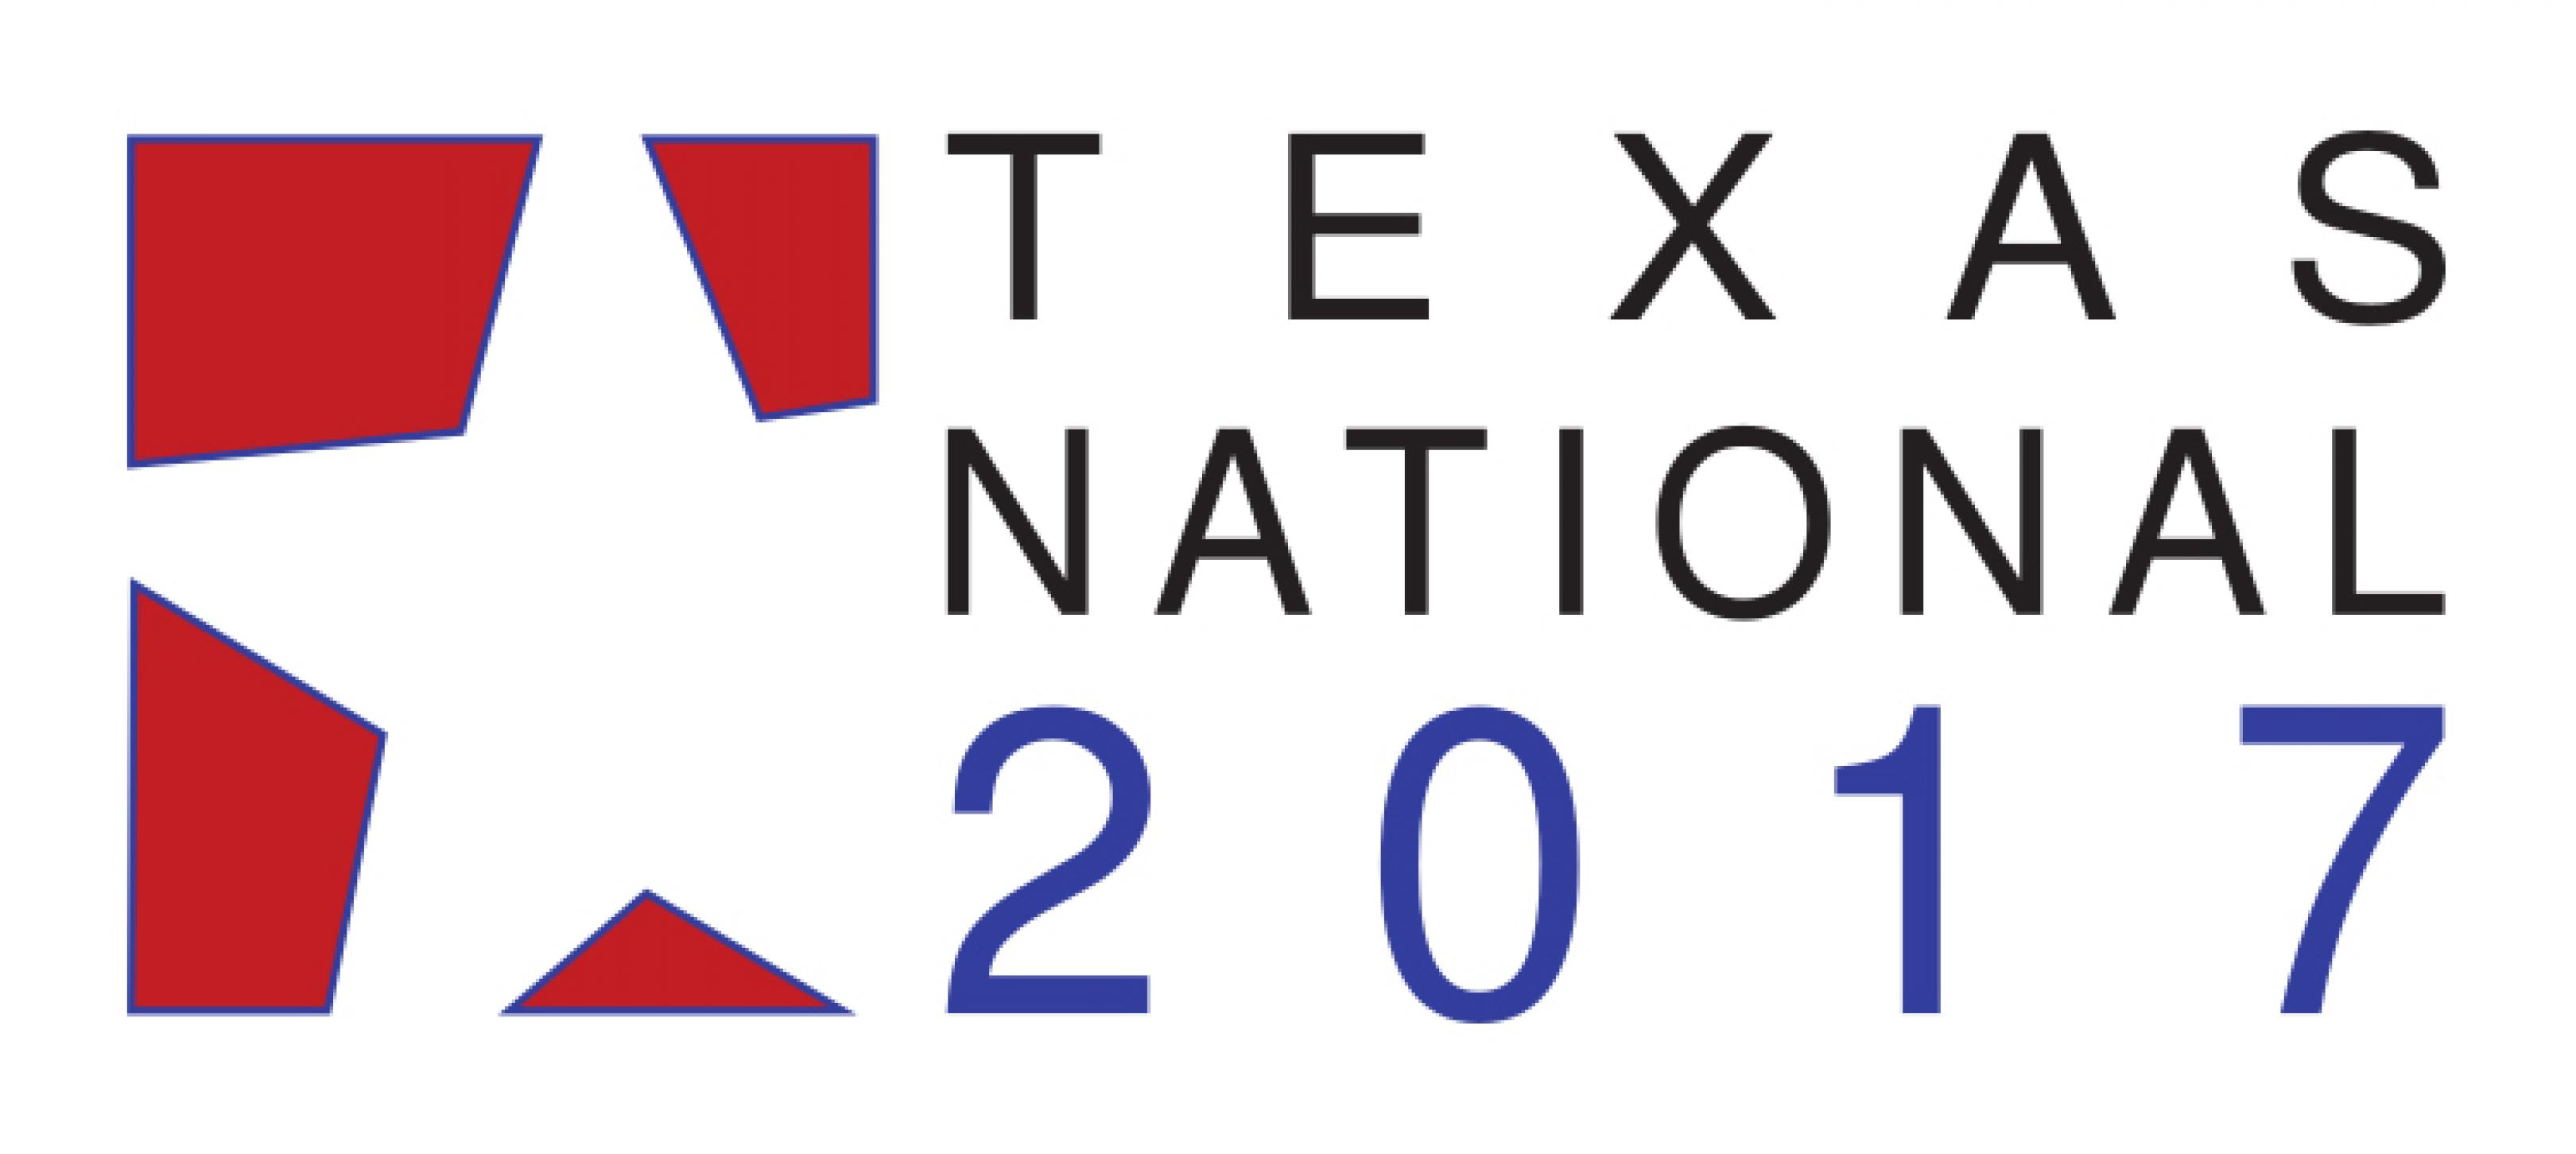 publicity image for 2017 Texas National